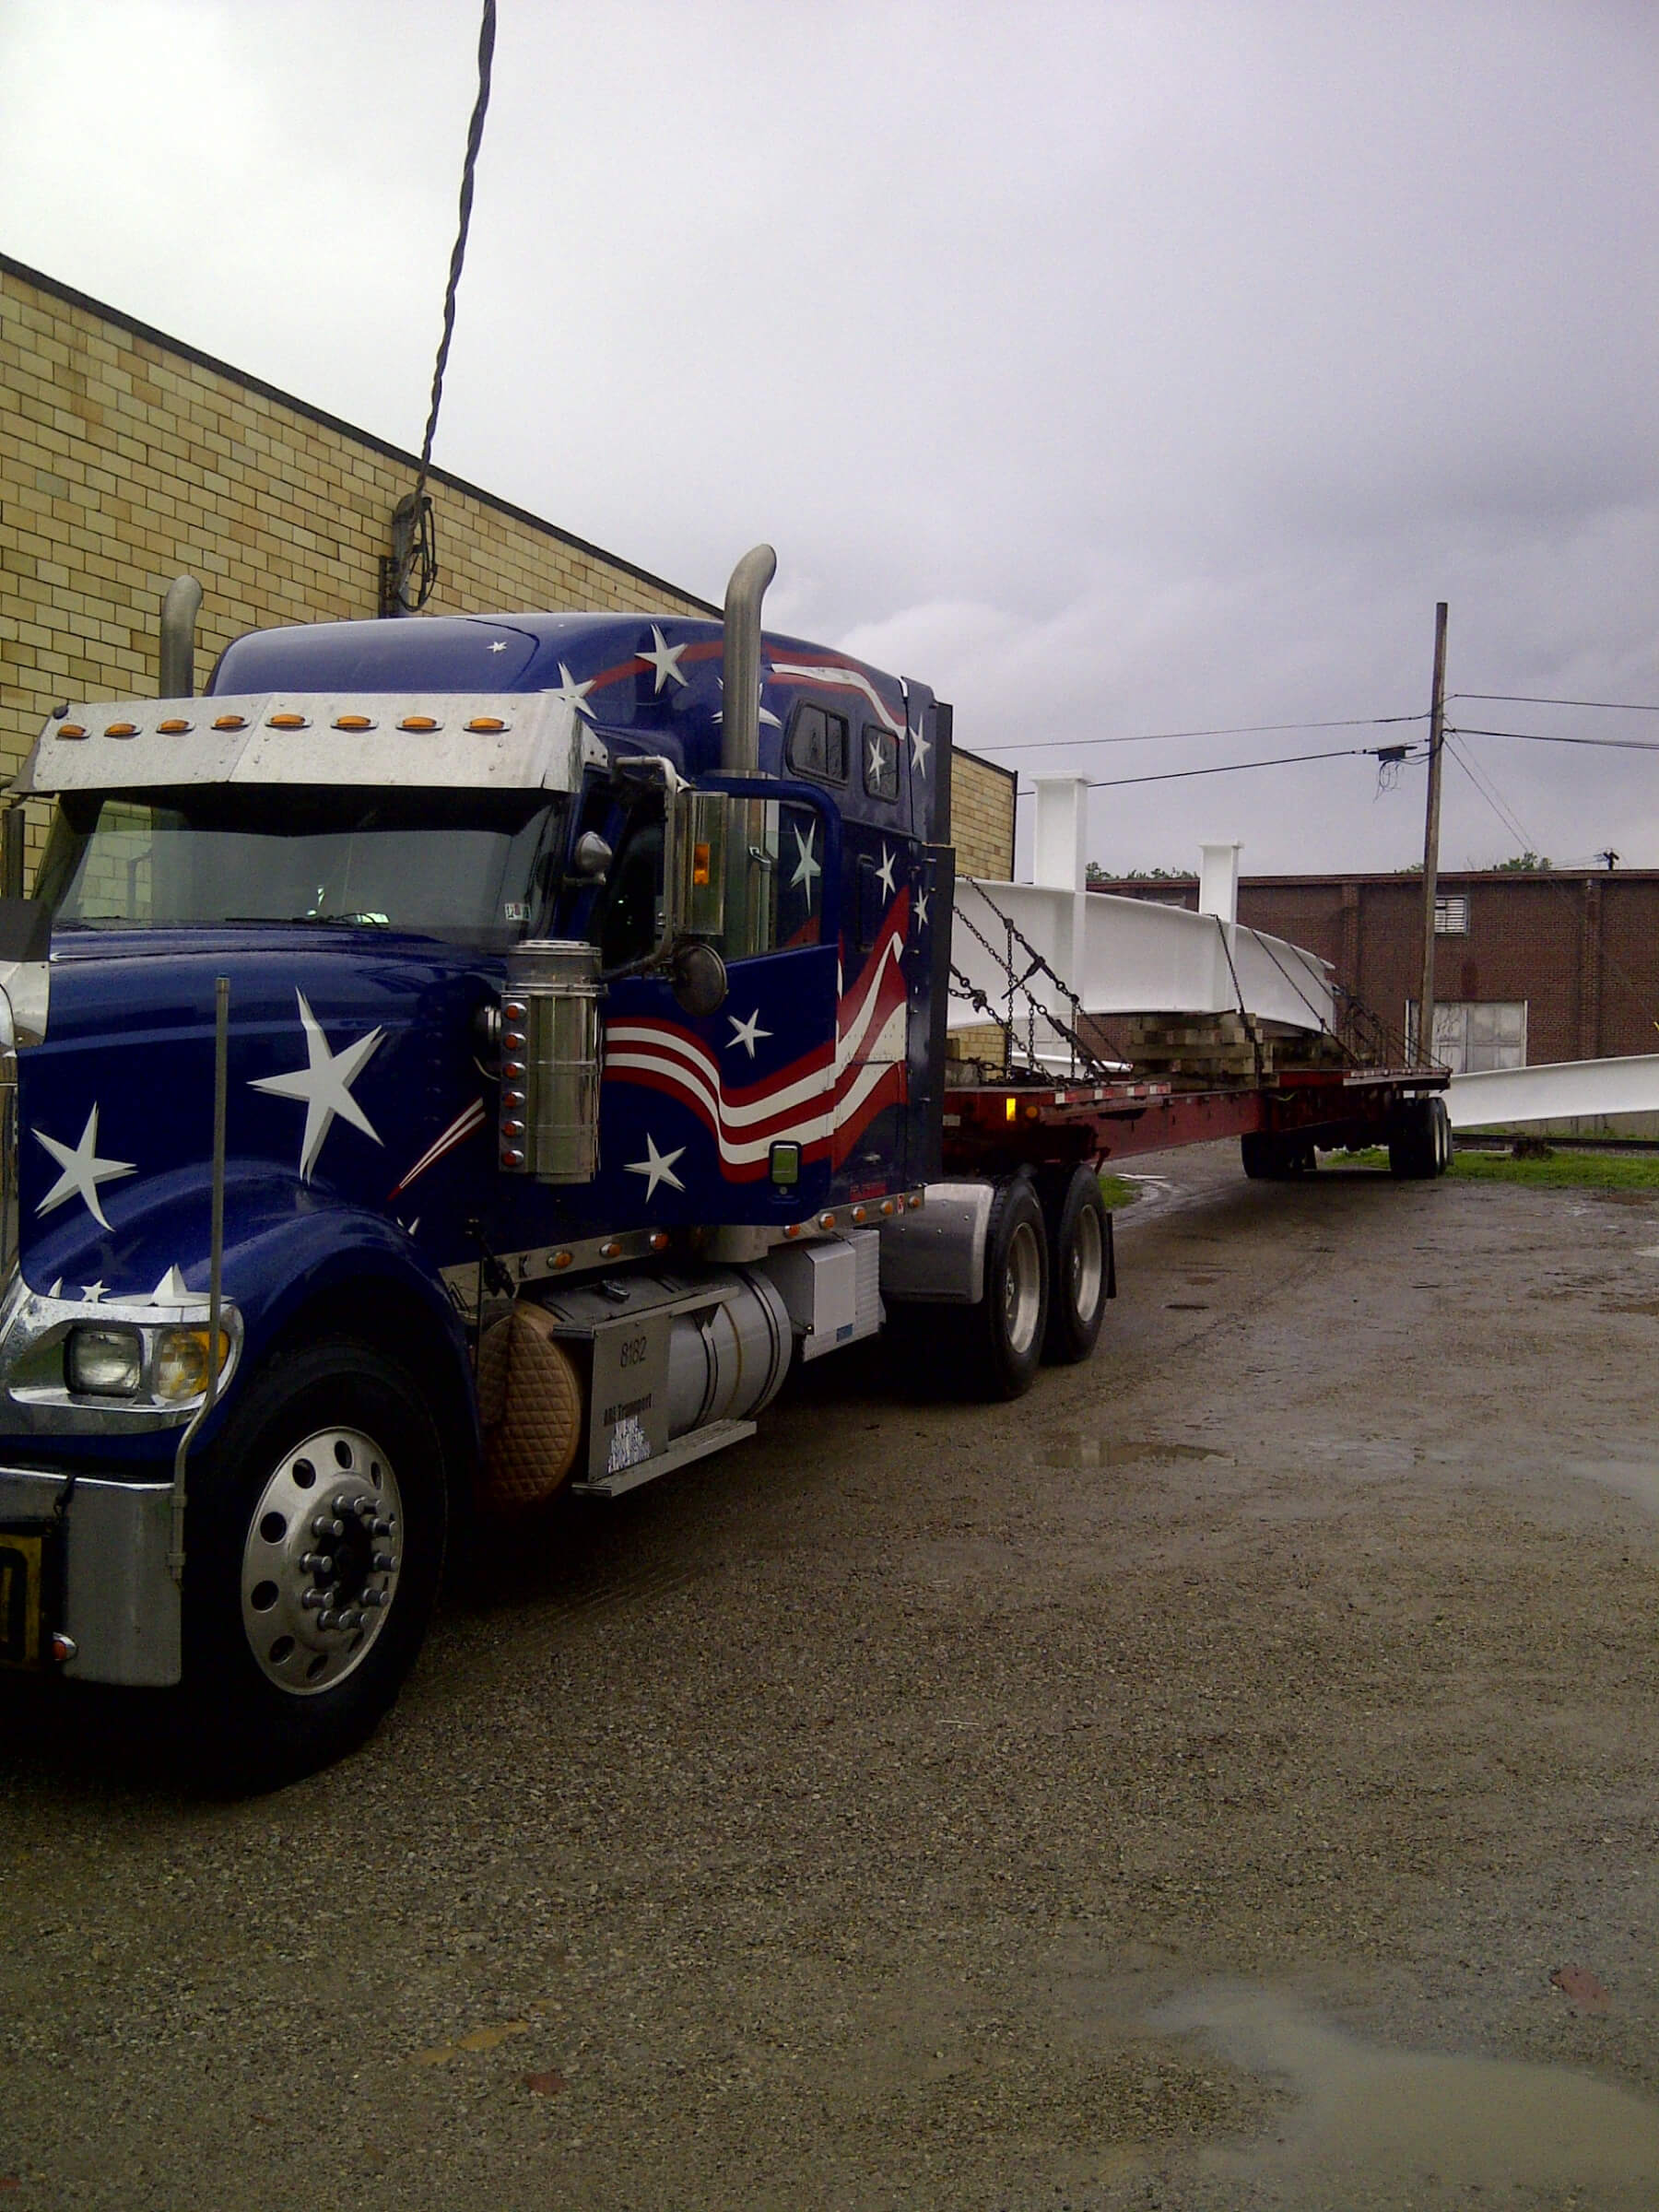 American Flatbed Truck hauling construction piece